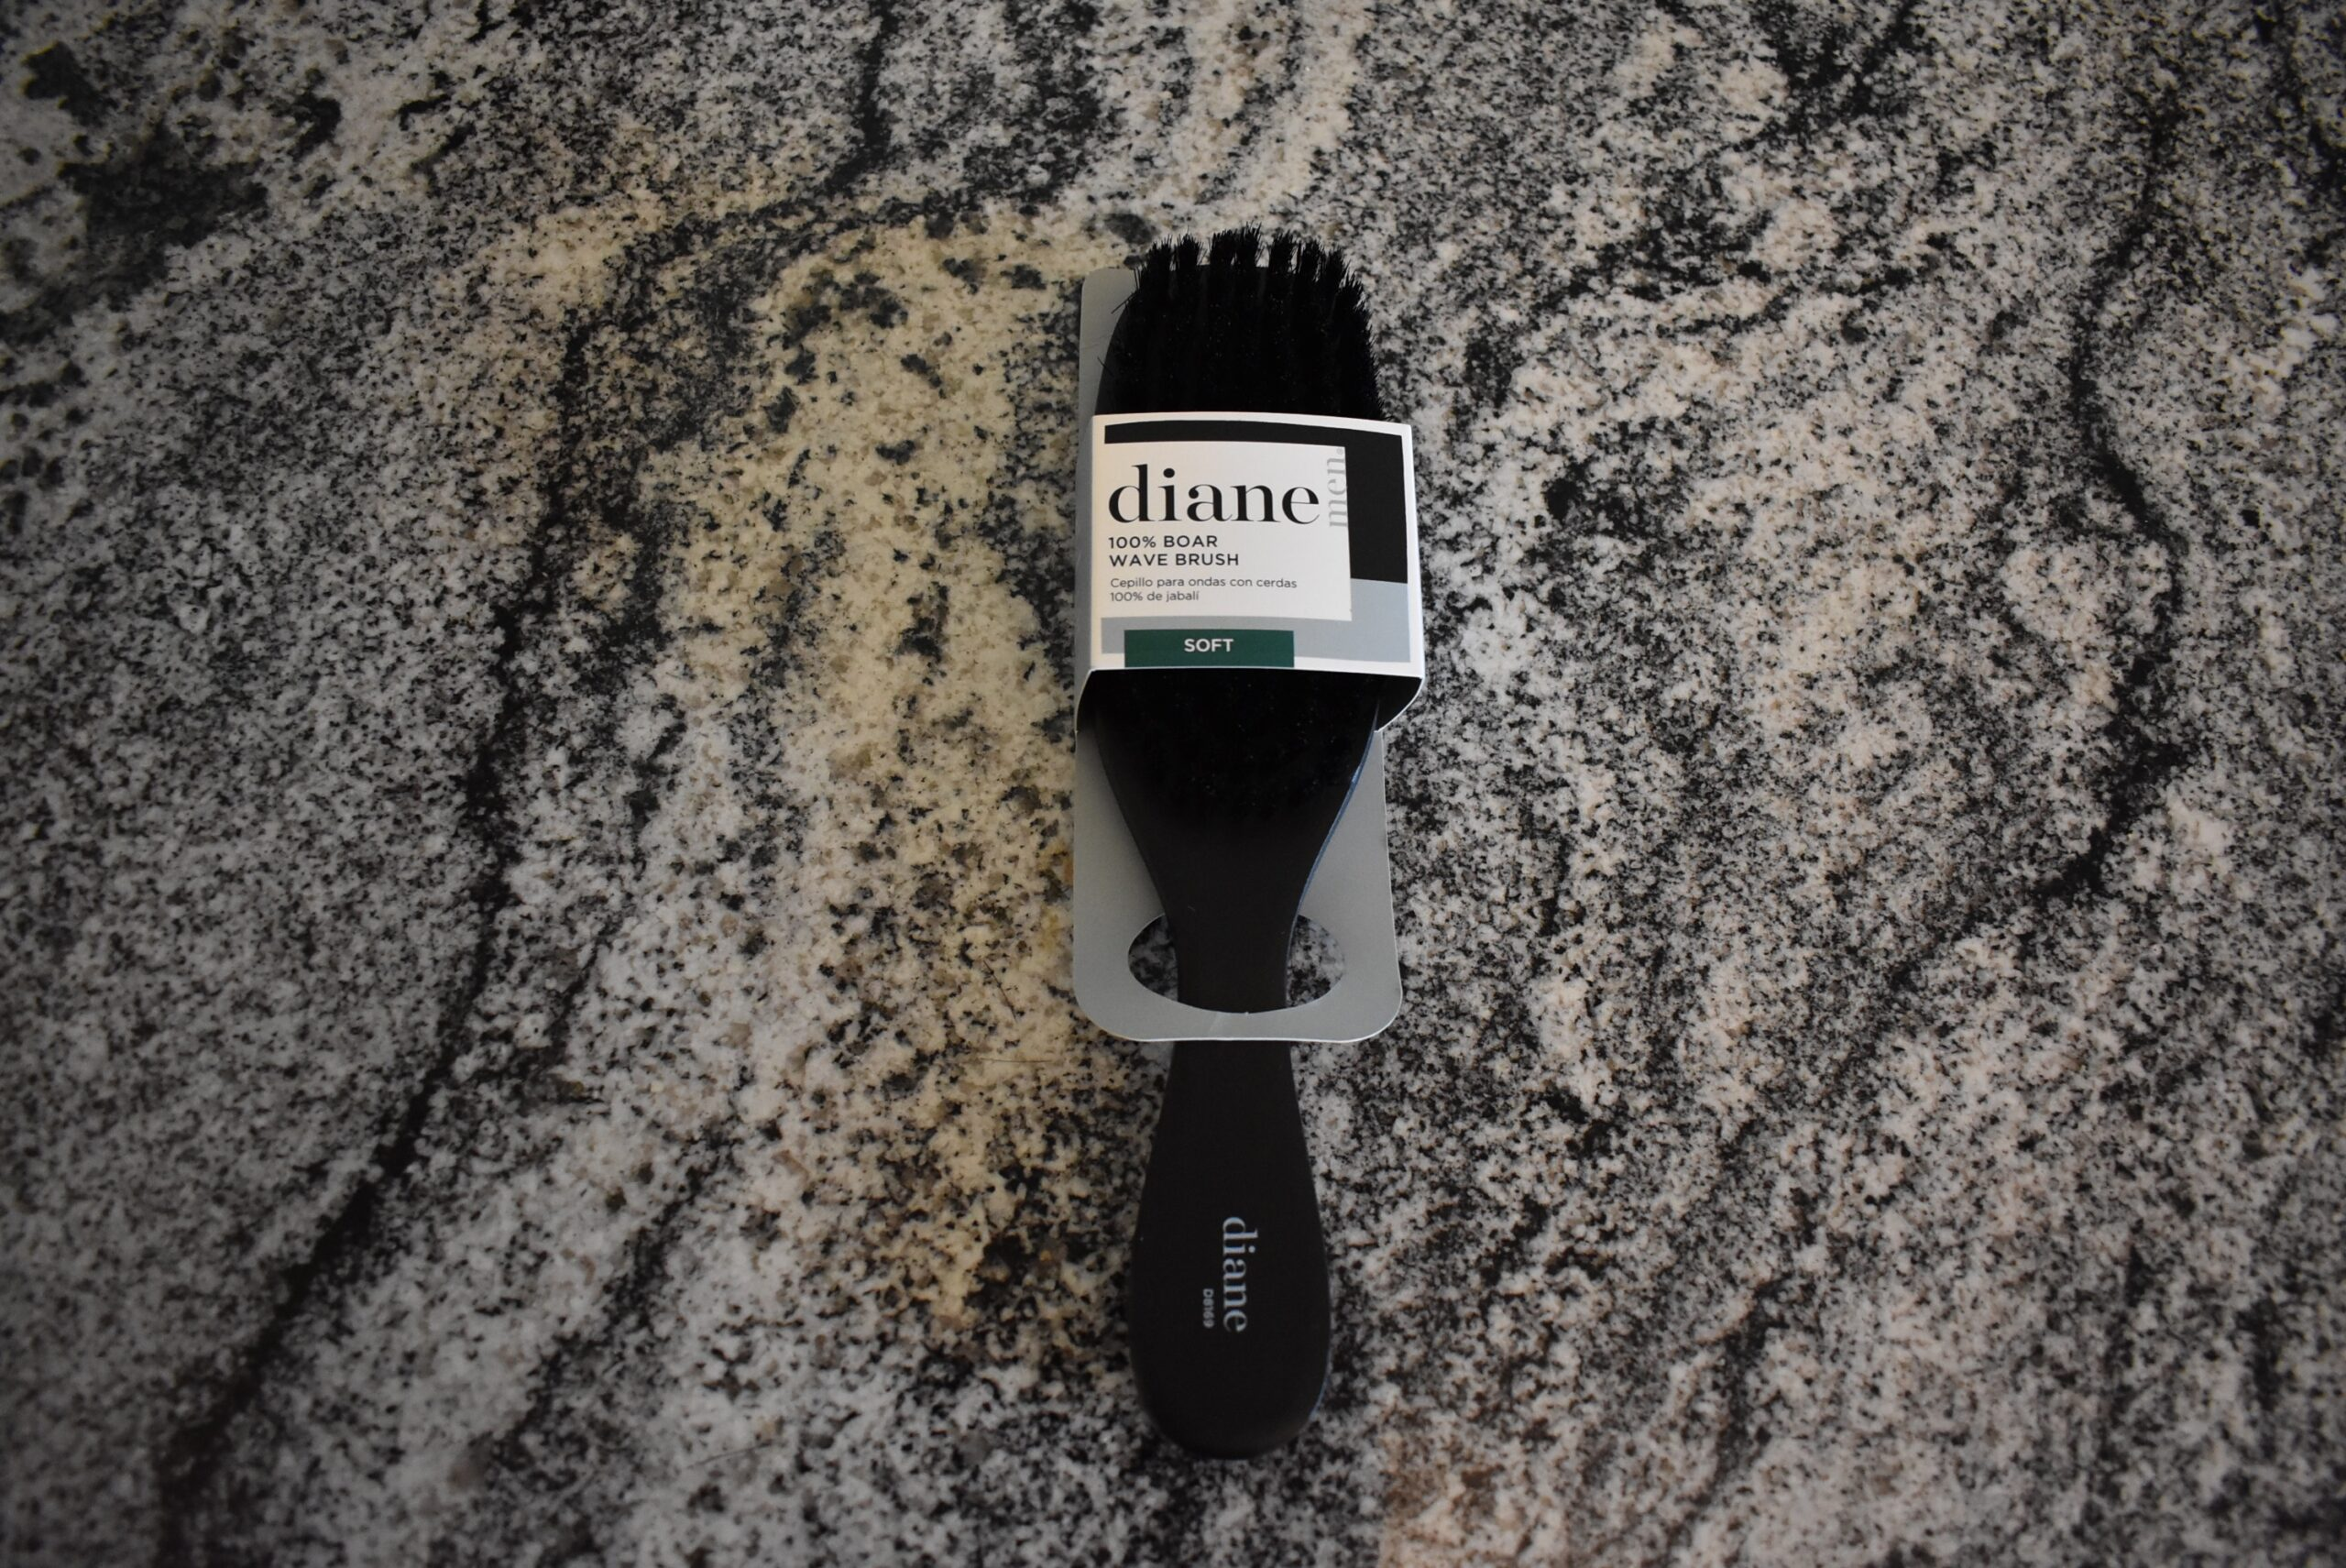 The diane boar brush (one of the best hair brushes) sitting on a counter before being unwrapped for a review